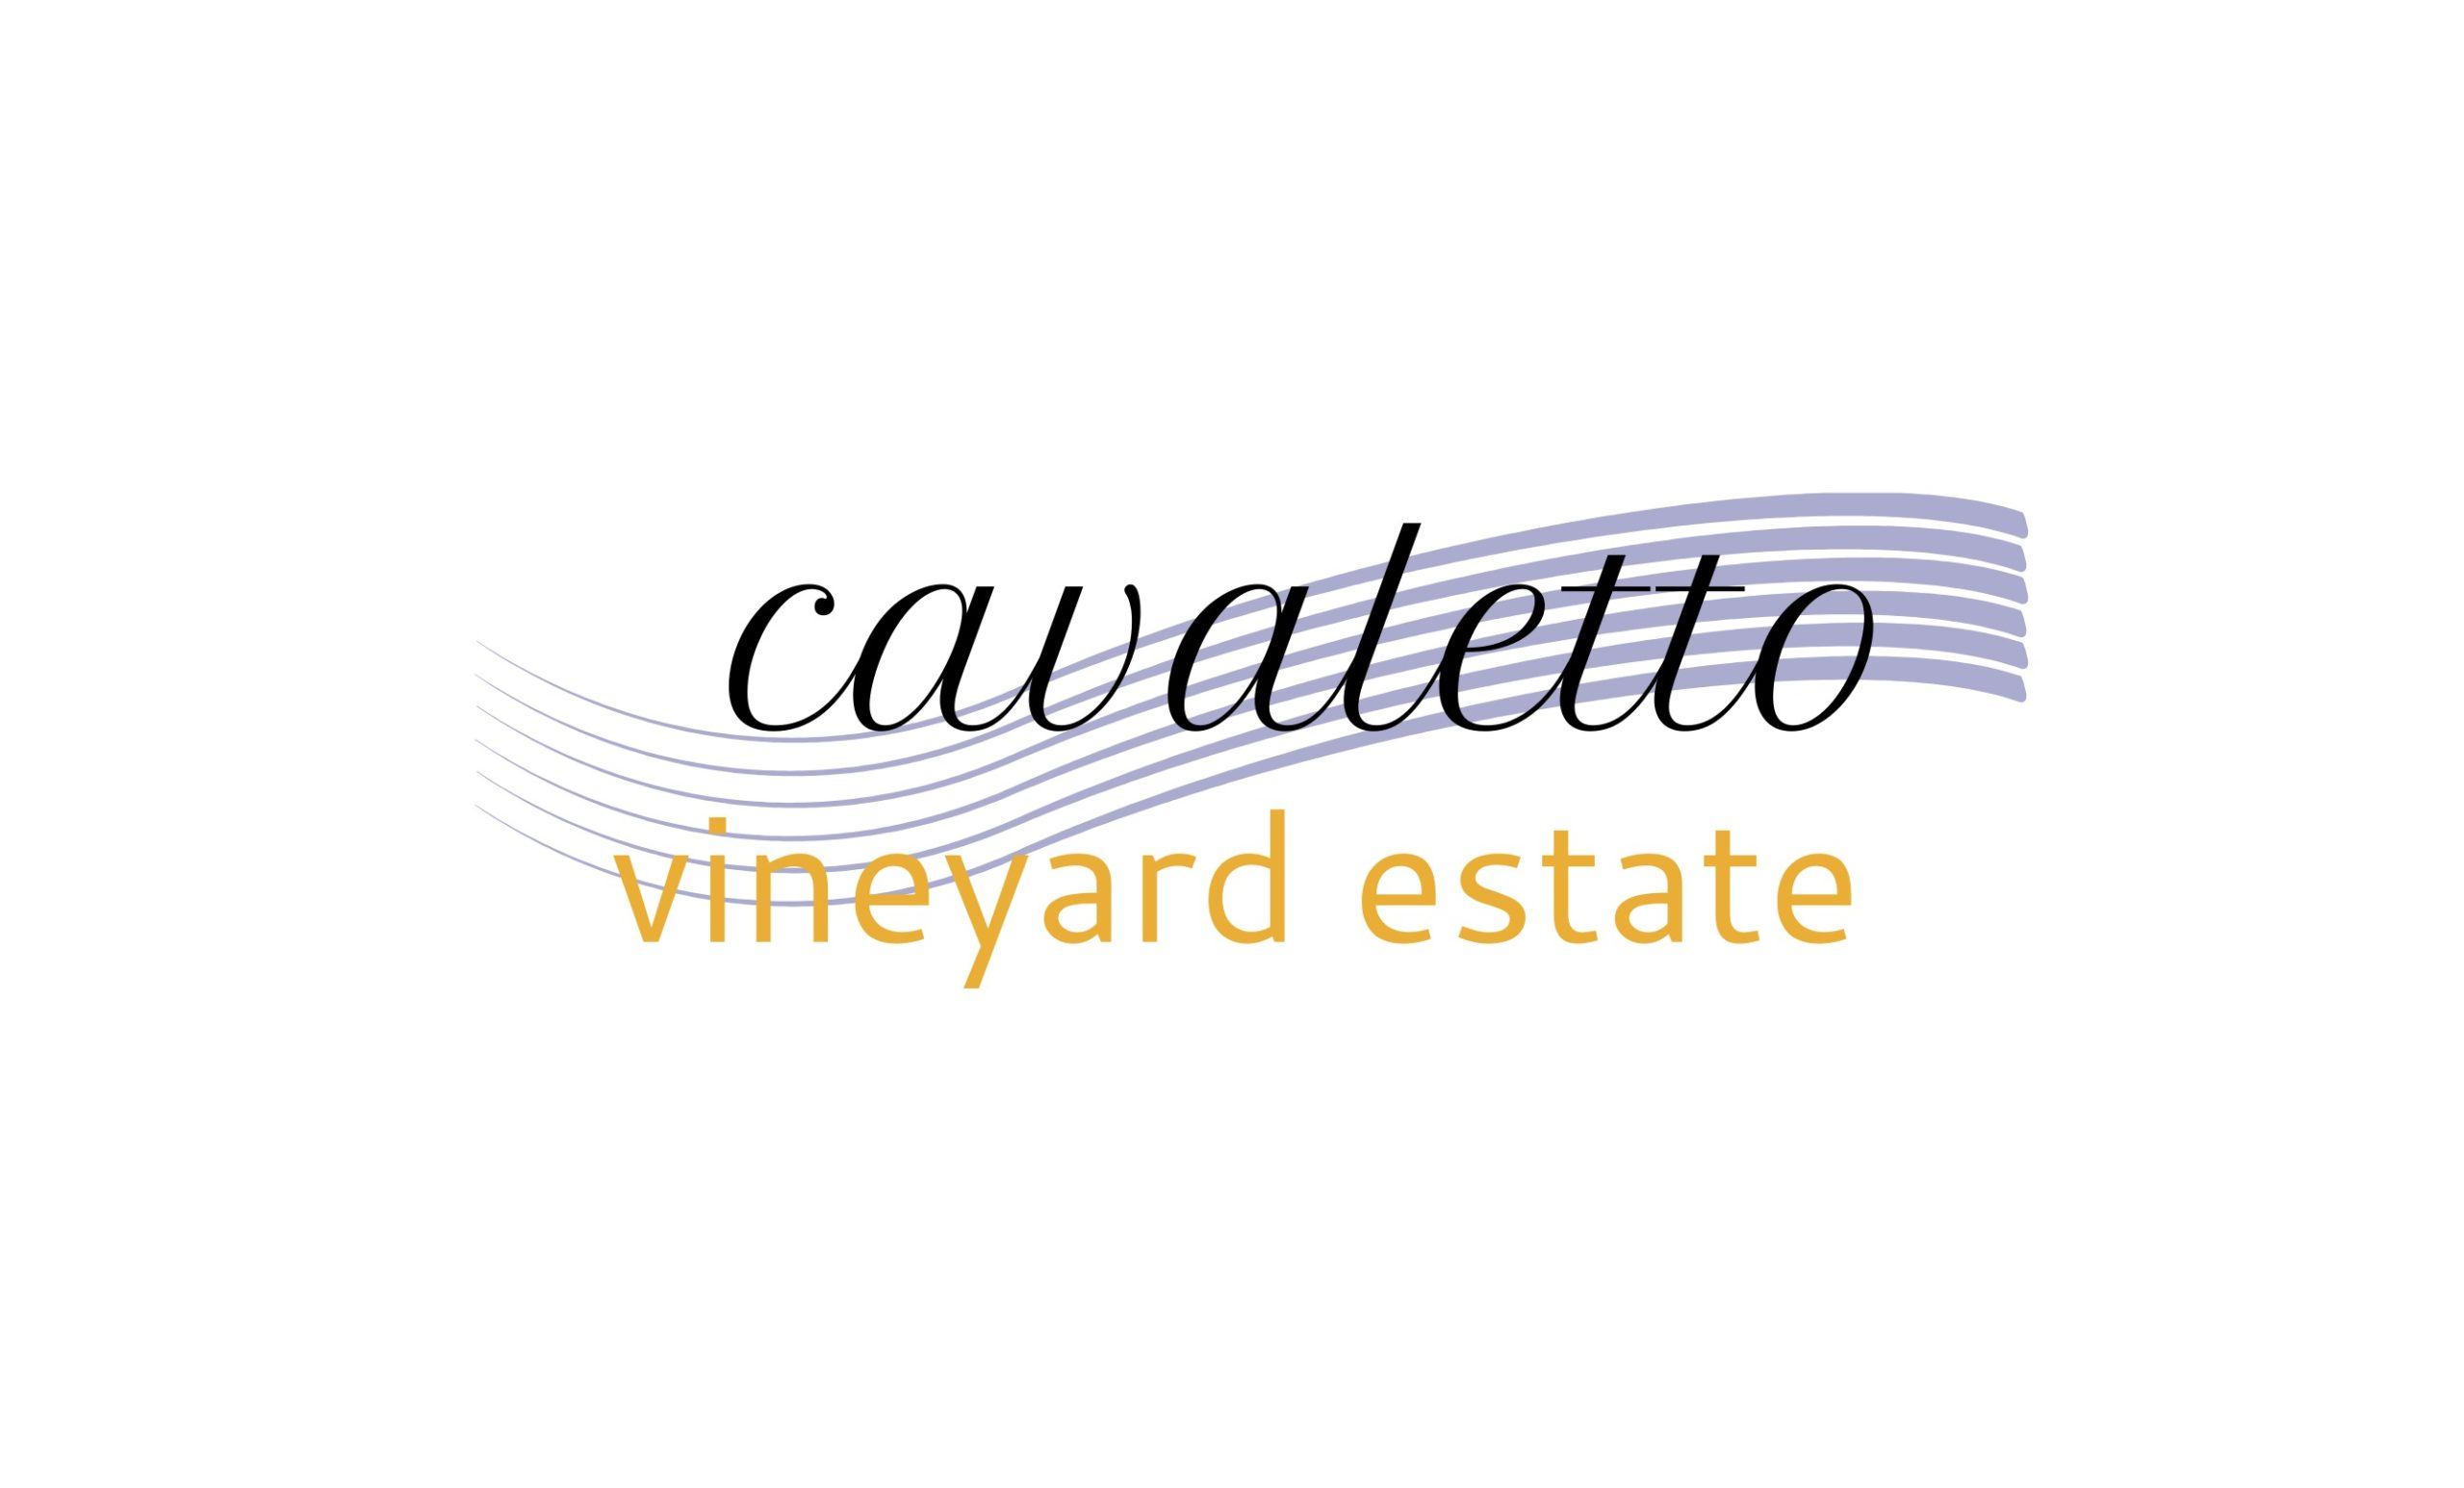 Cavaletto Vineyard Estate